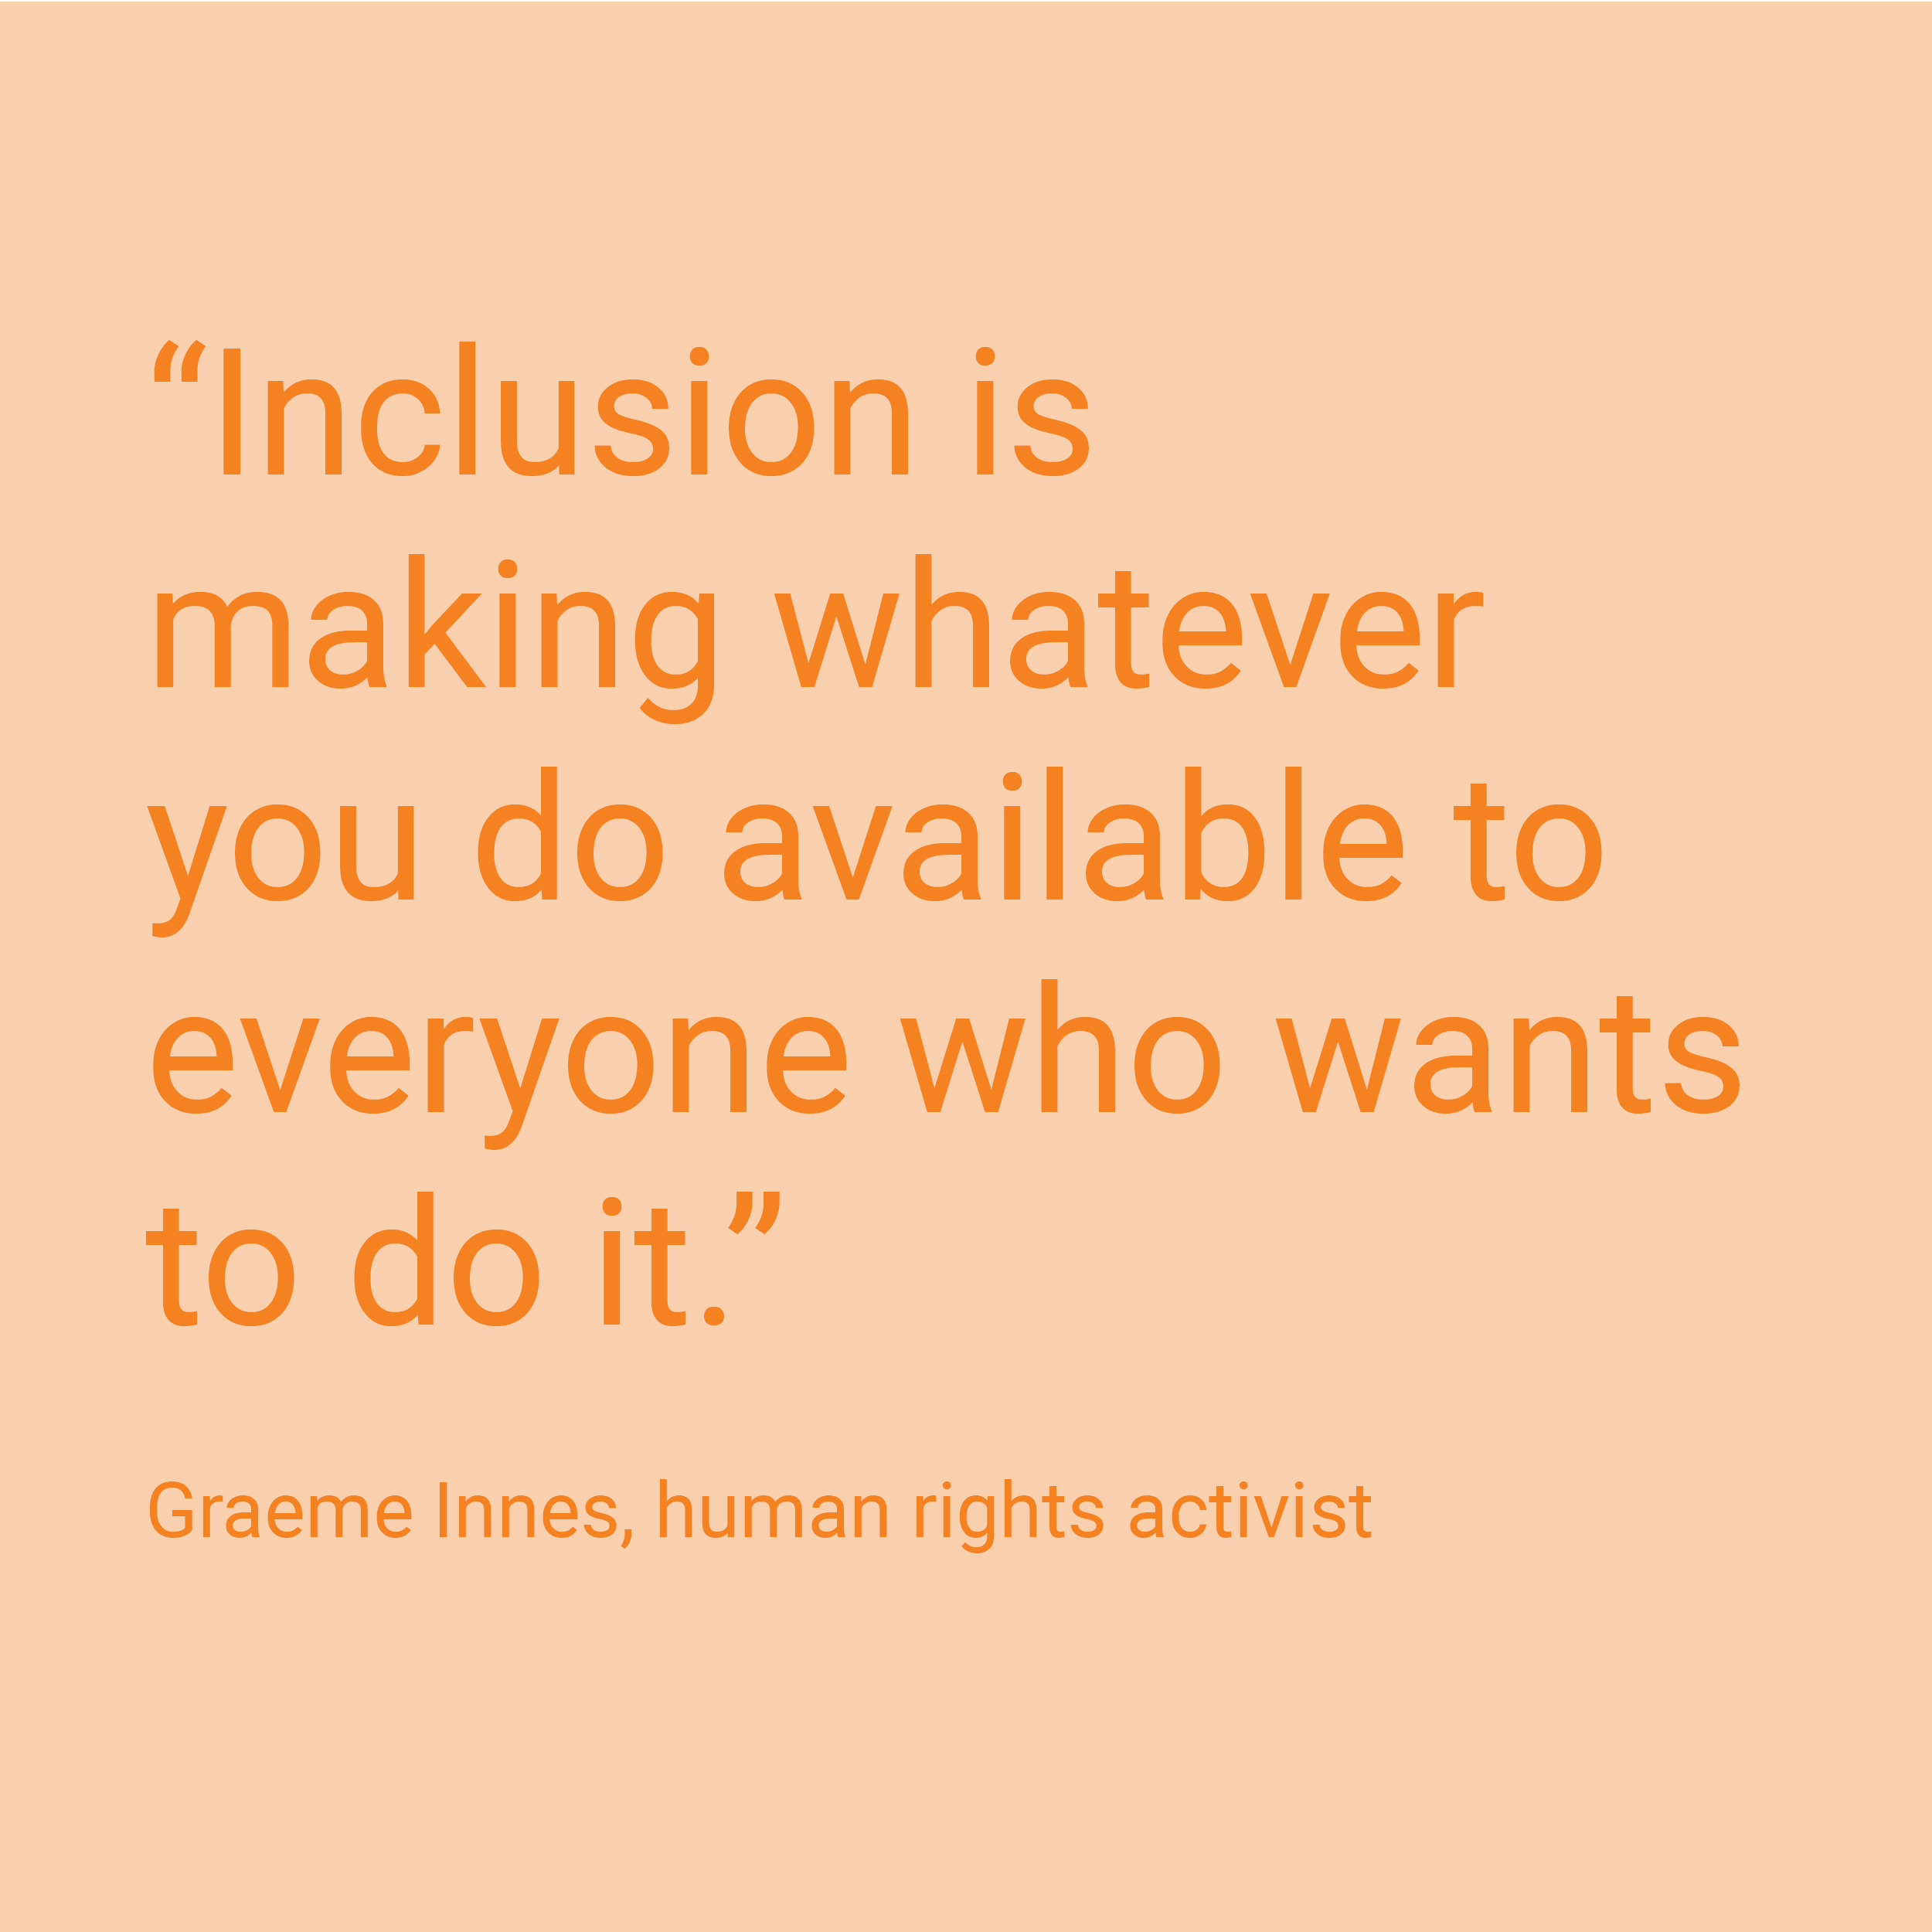 """Inclusion is making whatever you do available to everyone who wants to do it"" - quote by Graeme Innes, human rights activitist."